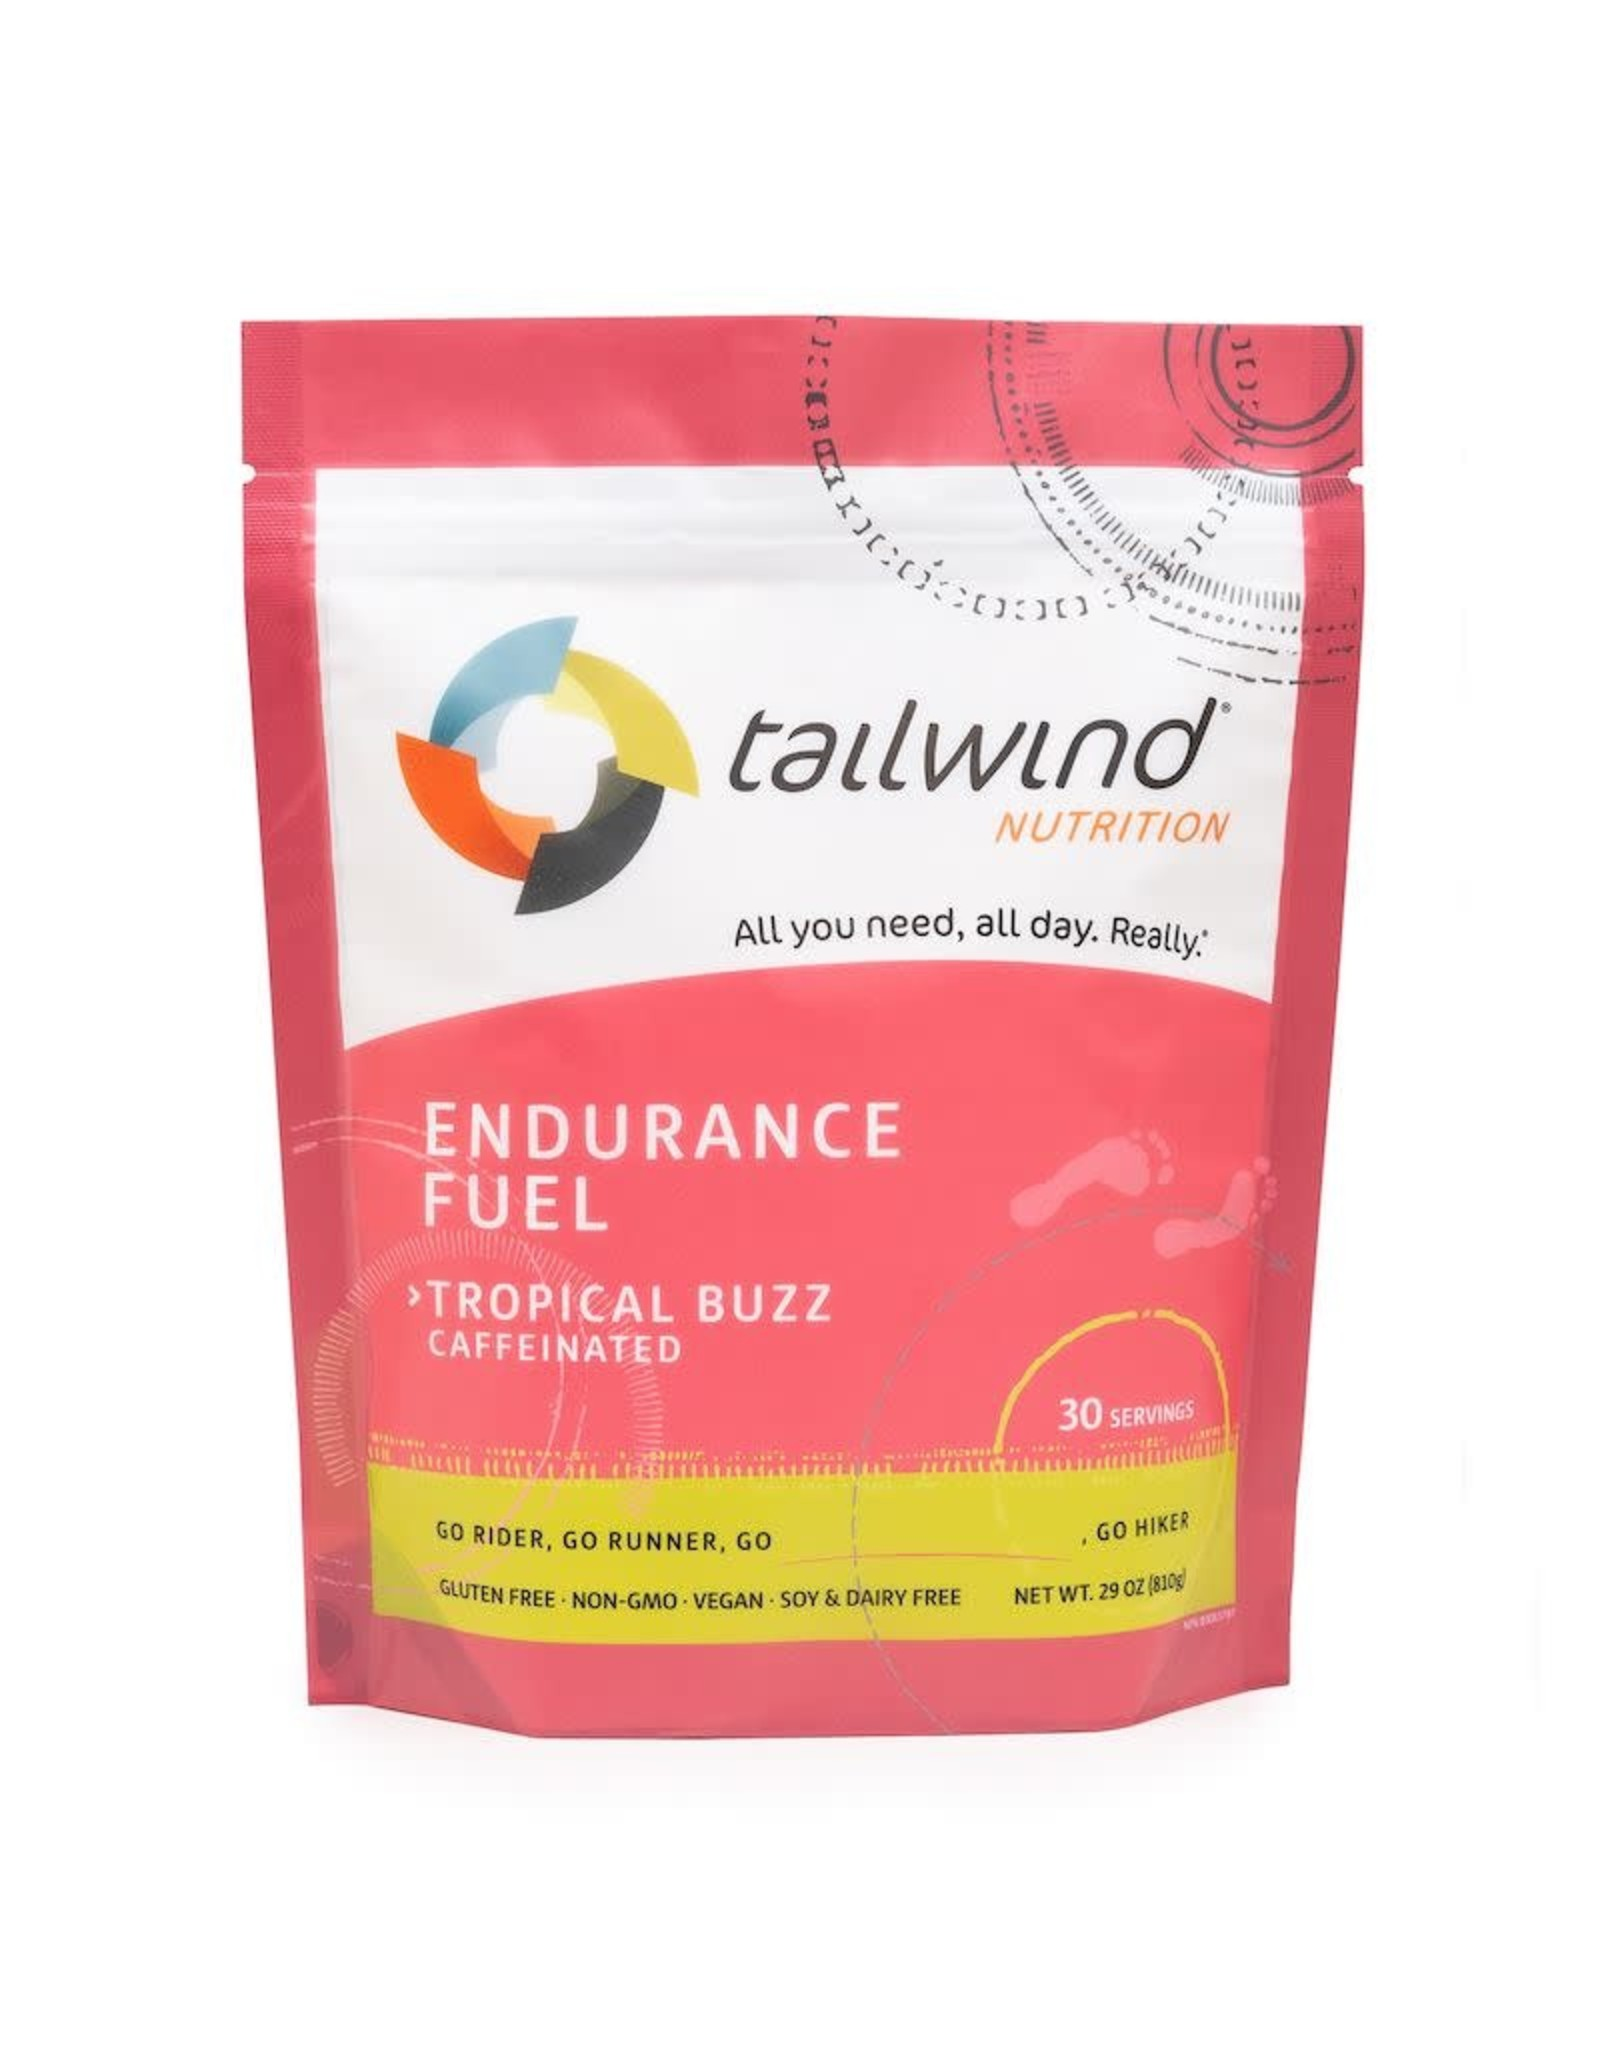 Tailwind Nutrition Endurance Fuel Tailwind Caffeinated Tropical Buzz (30 servings)